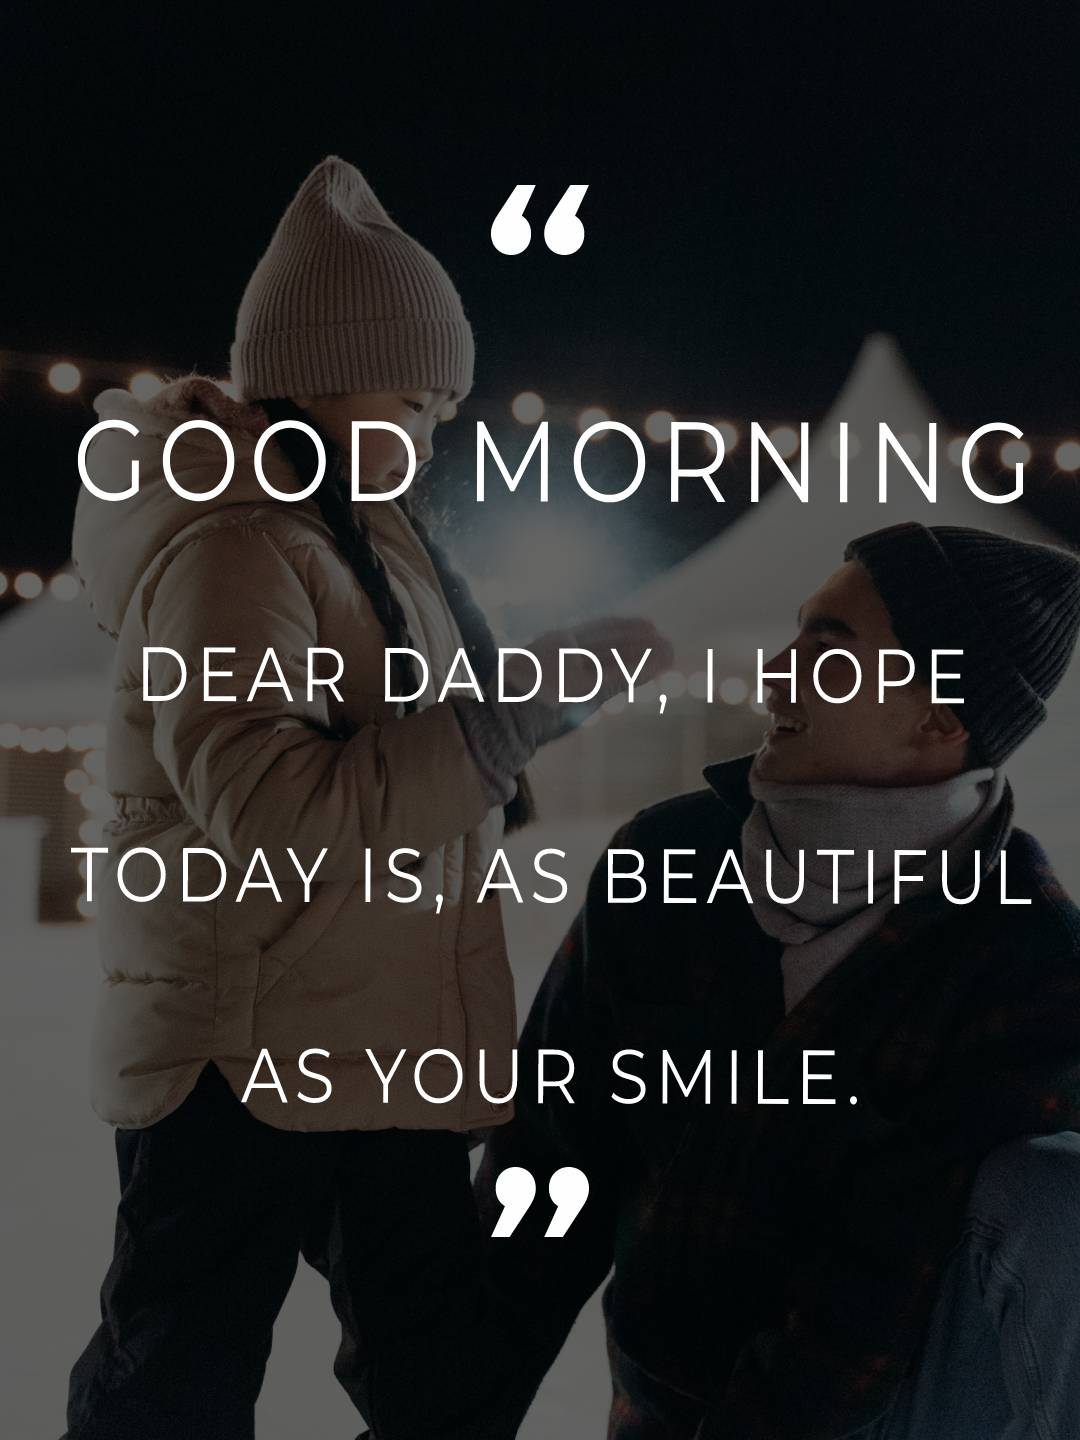 Amazing good morning messages for dad